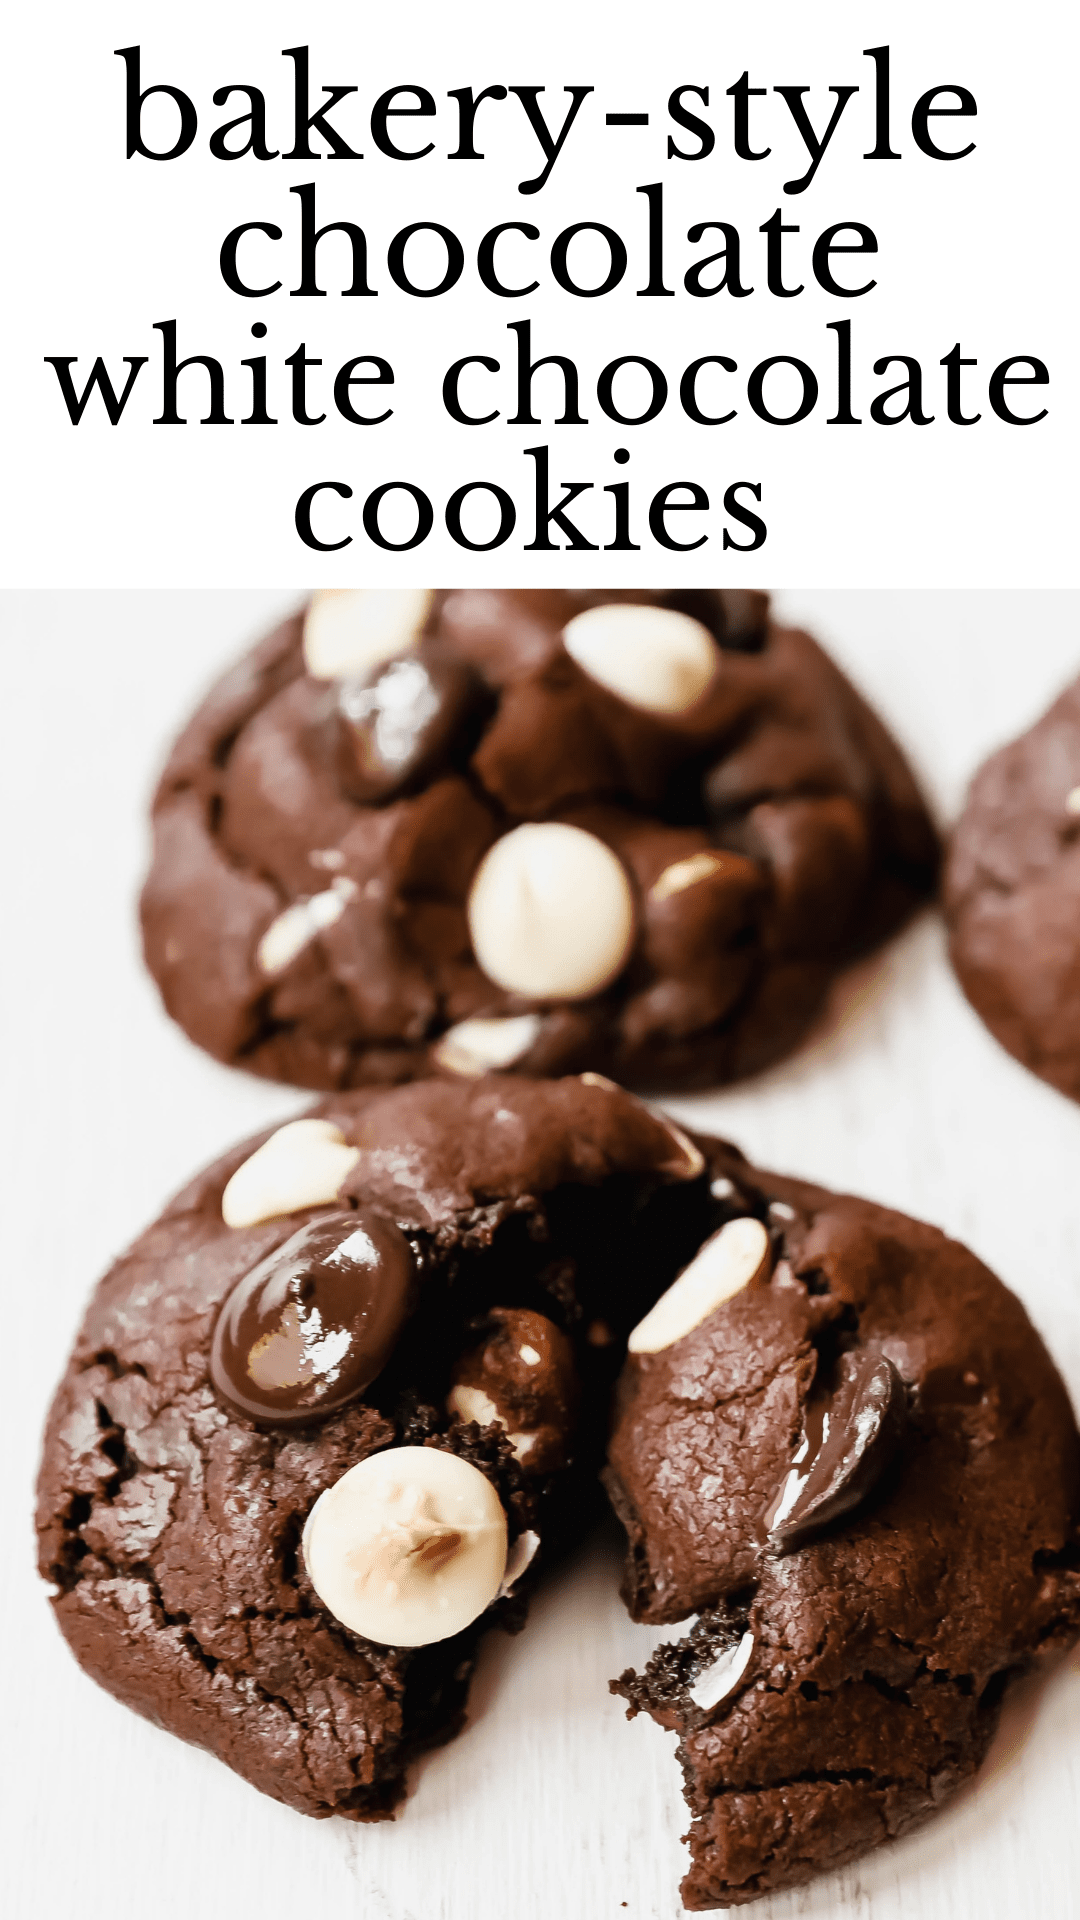 Bakery-Style Chocolate White Chocolate Chip Cookies Soft, thick, and chewy chocolate cookies with white chocolate chunks. This cookie is for chocolate lovers!